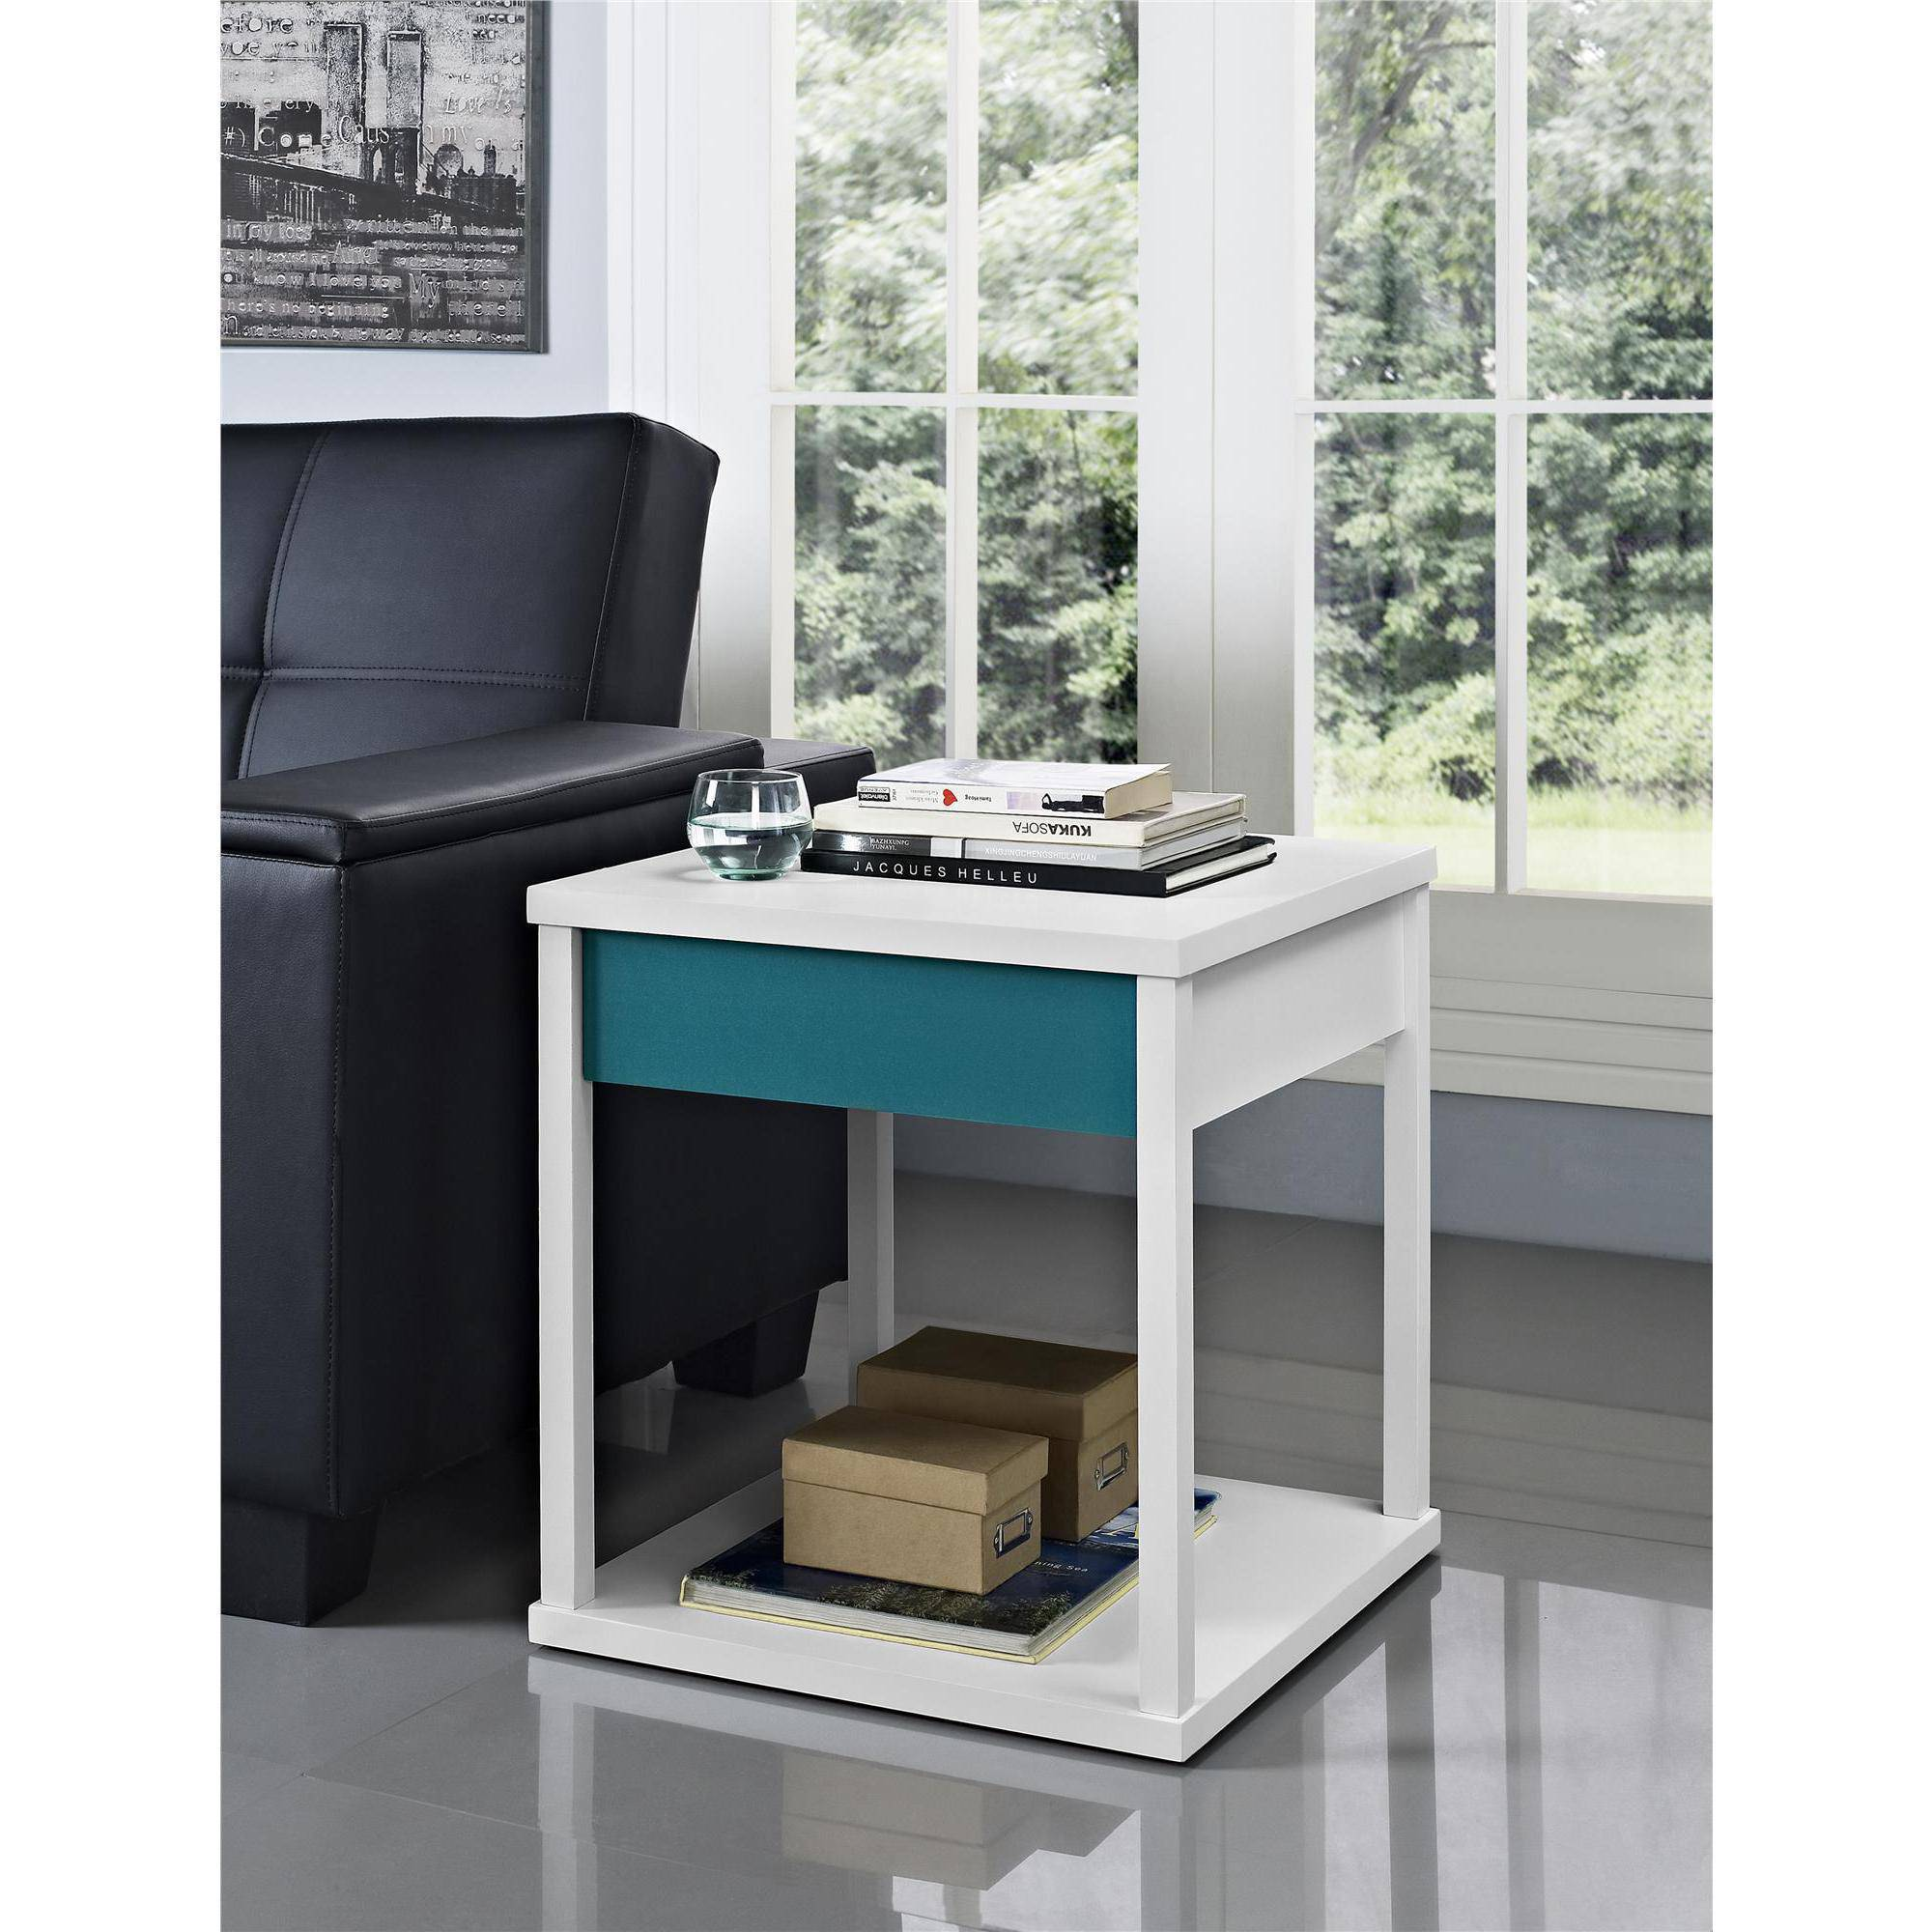 Altra Furniture Parsons Nightstand/End Table, Multiple Colors